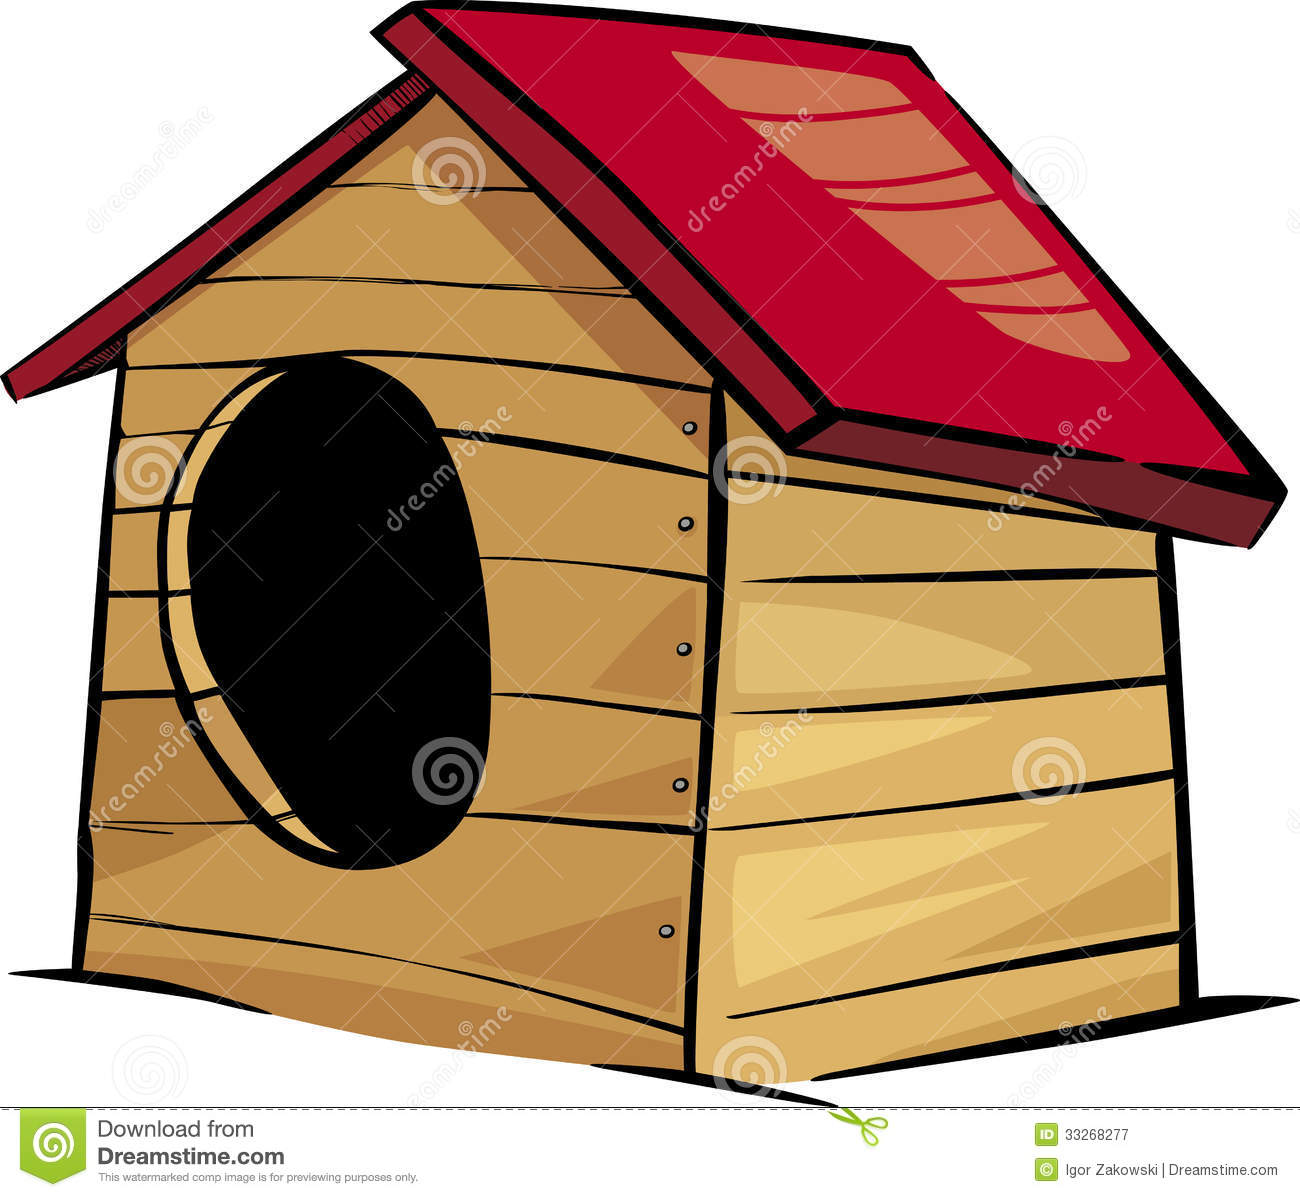 Doghouse clipart cute. Panda free images